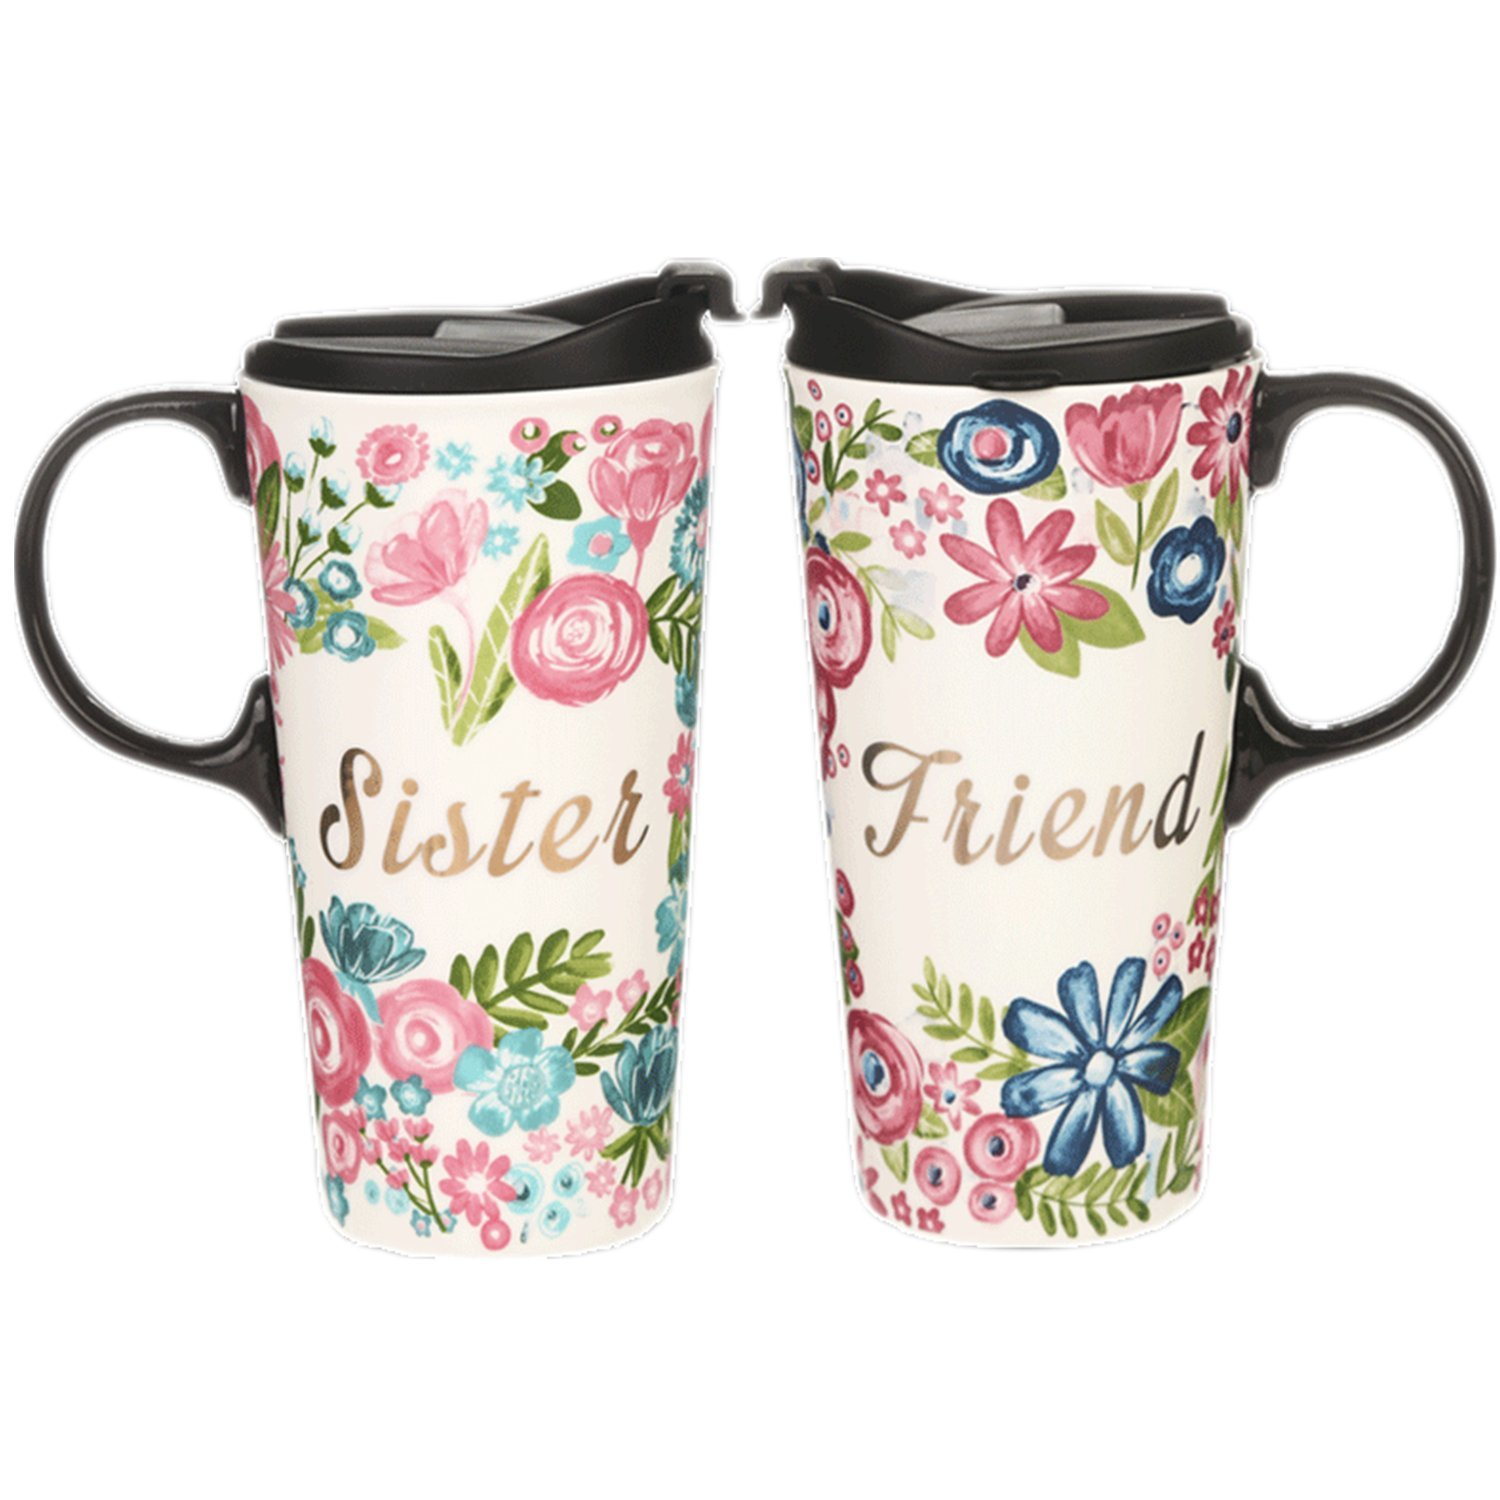 CEDAR HOME Travel Coffee Ceramic Mug Porcelain Latte Tea Cup With Lid in Gift Box 17oz. Sister & Friend, 2 Pack by CEDAR HOME (Image #1)